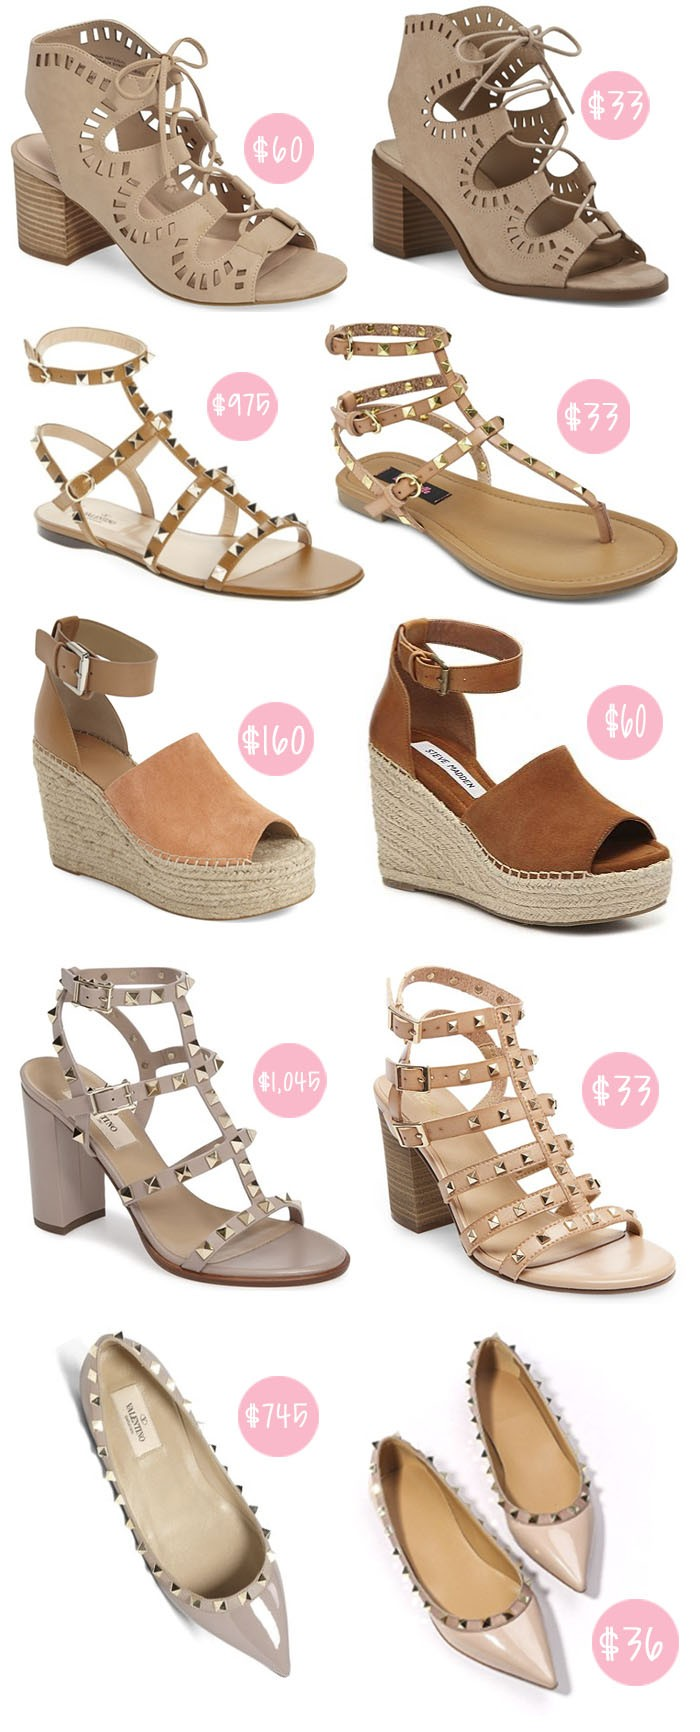 Spring Shoes For Less by fashion blogger Kelsey of Chasing Cinderella